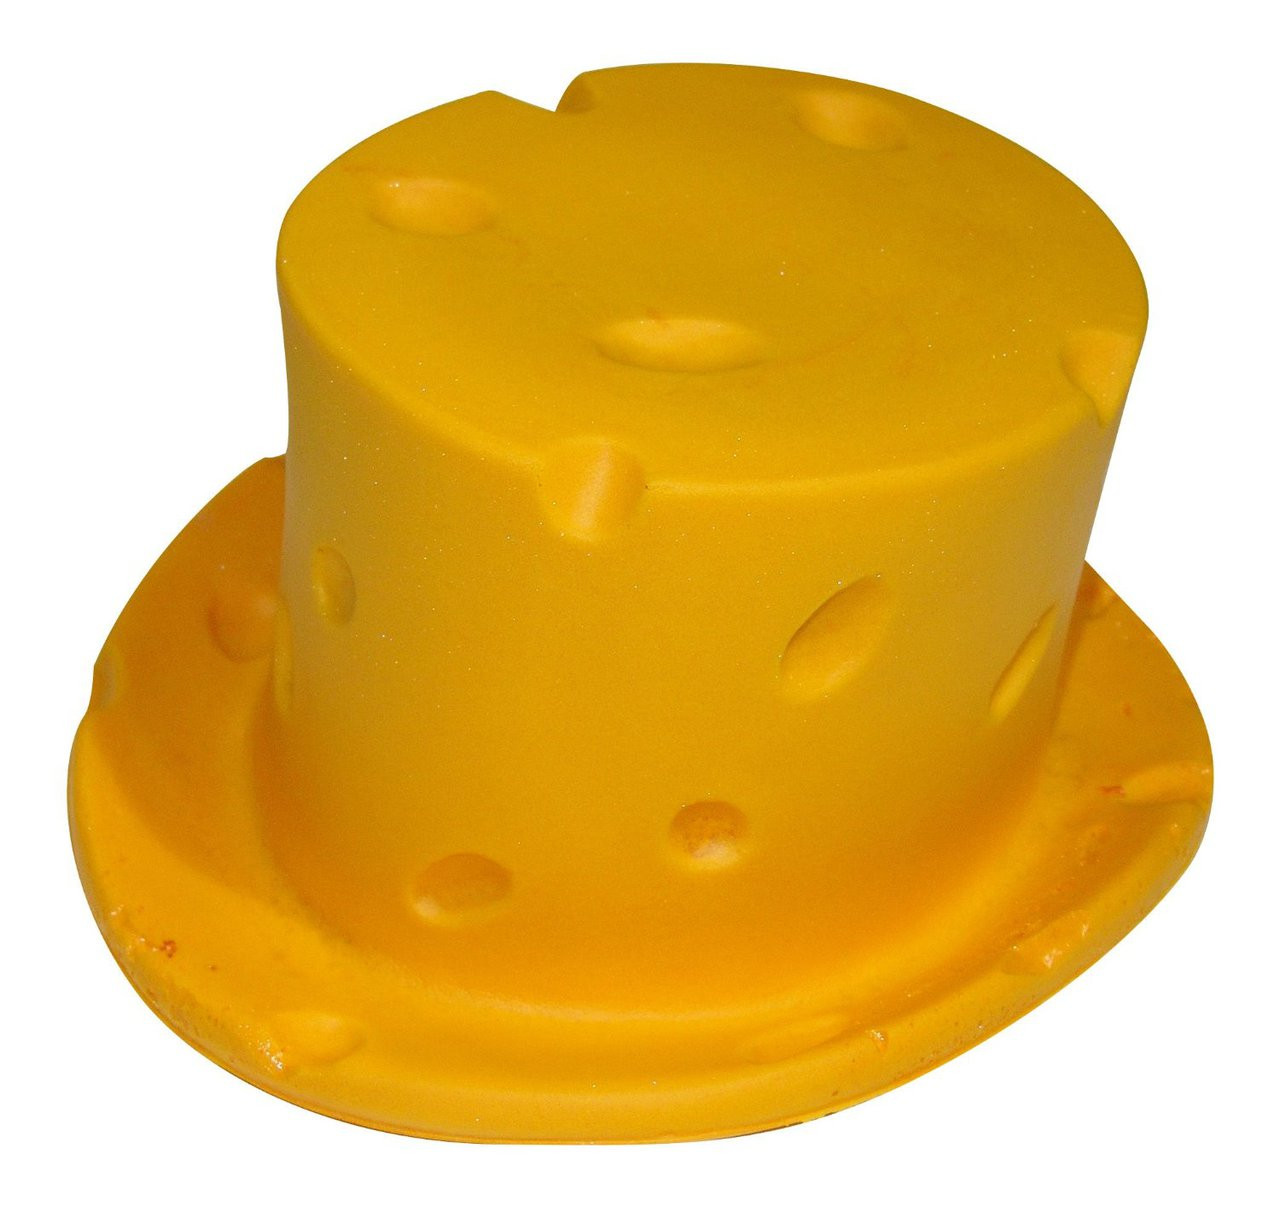 0fced6a54 Green Bay Packers NFL Cheesehead Top Hat. Foamation. Image 1